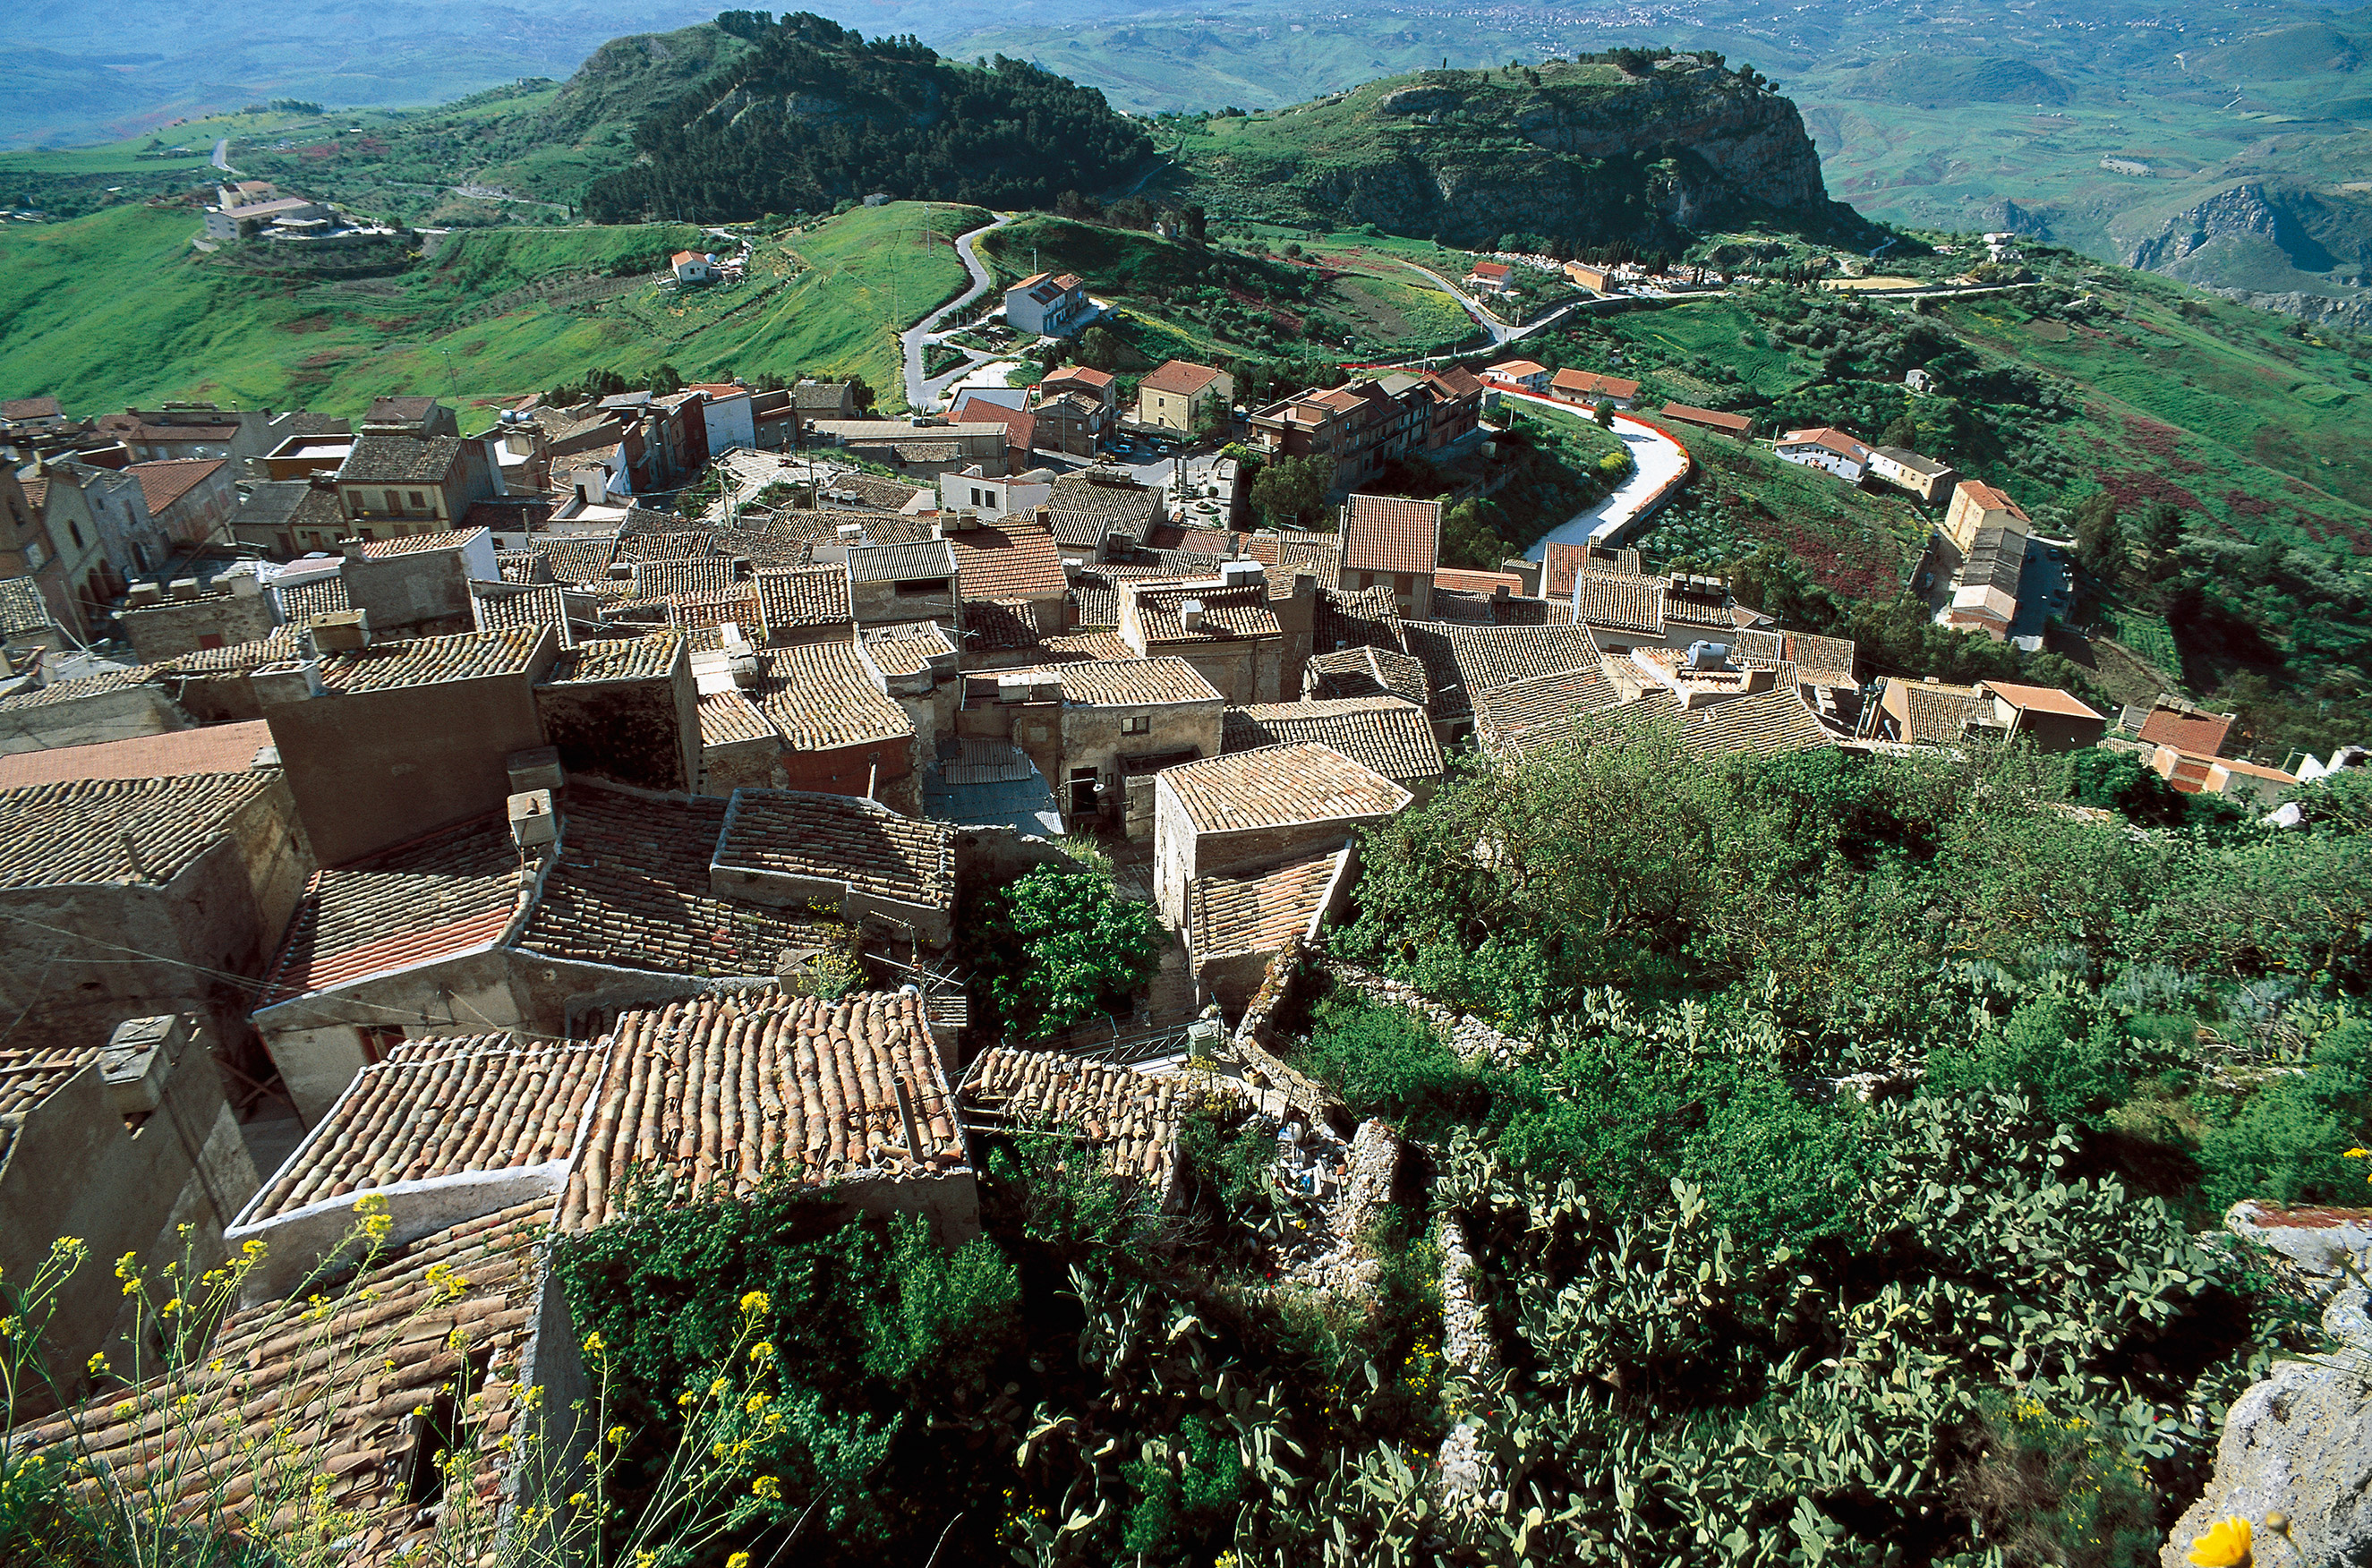 An overhead view of the village of Sutera, Sicily, Italy, on July 23, 2007.